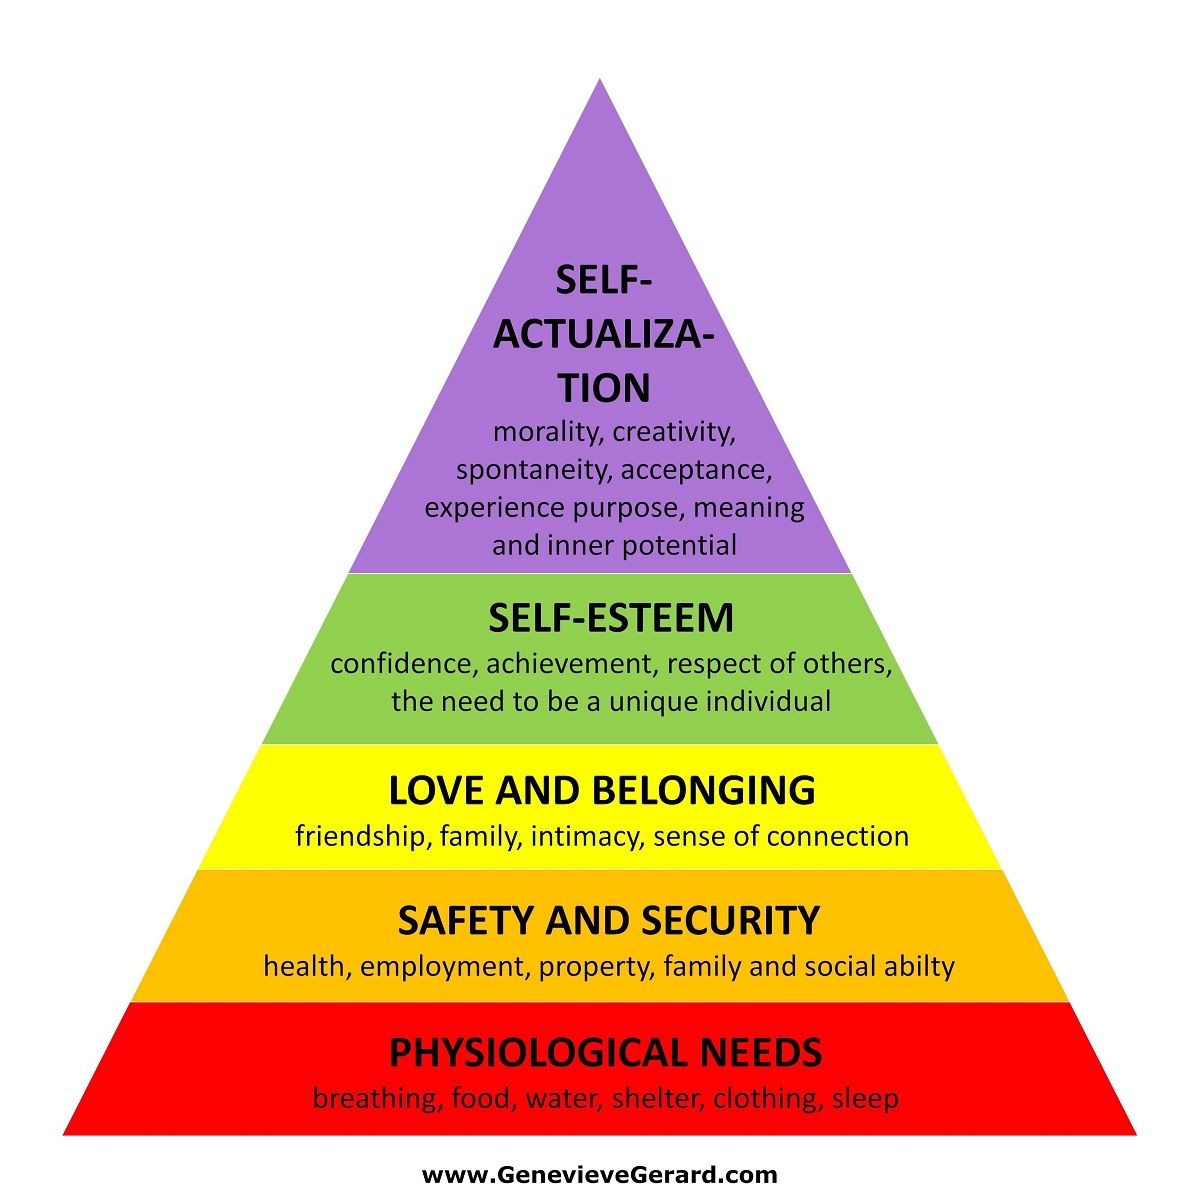 Ways To Relieve Stress Maslow S Hierarchy Of Needs How To Relieve Stress Abraham Maslow